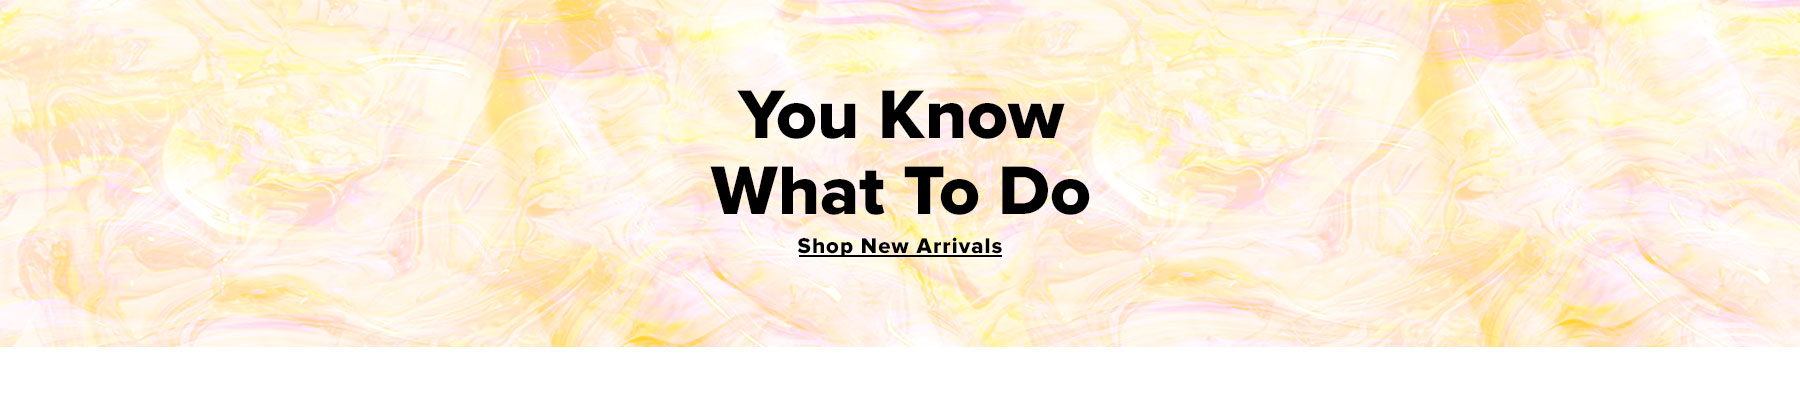 You know what to do. Shop new arrivals. (colorful marble graphic showcasing light pinks and yellows)